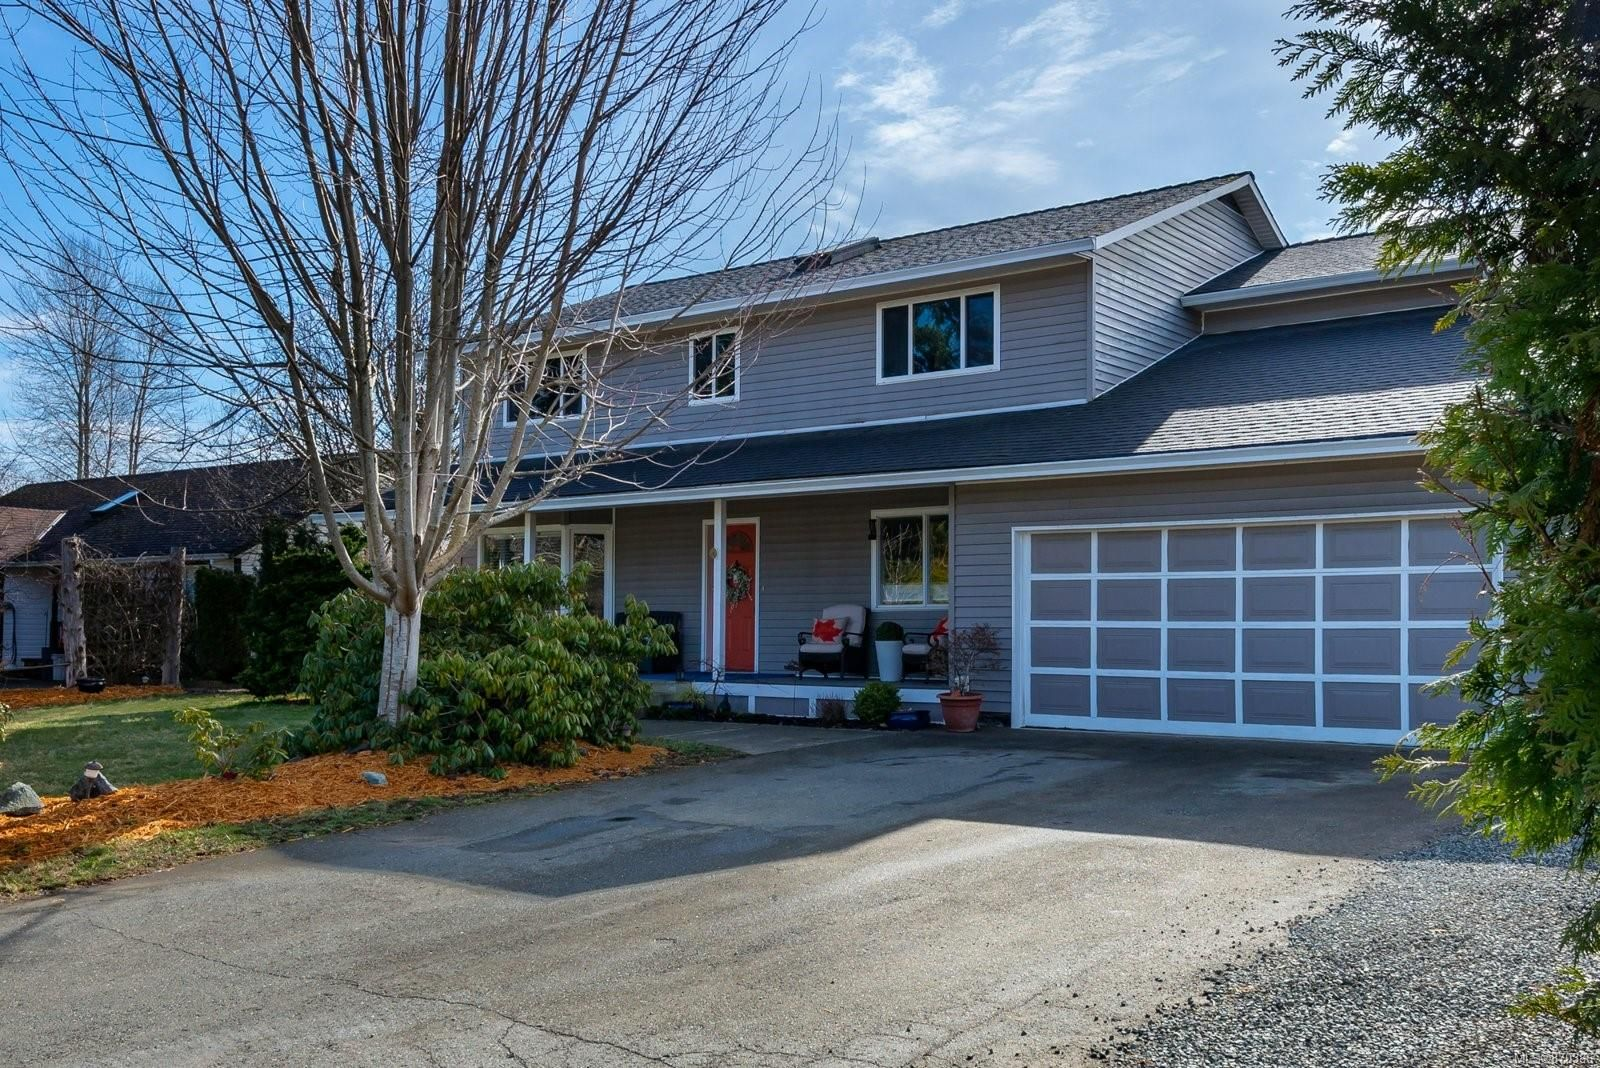 Main Photo: 2885 Caledon Cres in : CV Courtenay East House for sale (Comox Valley)  : MLS®# 870386